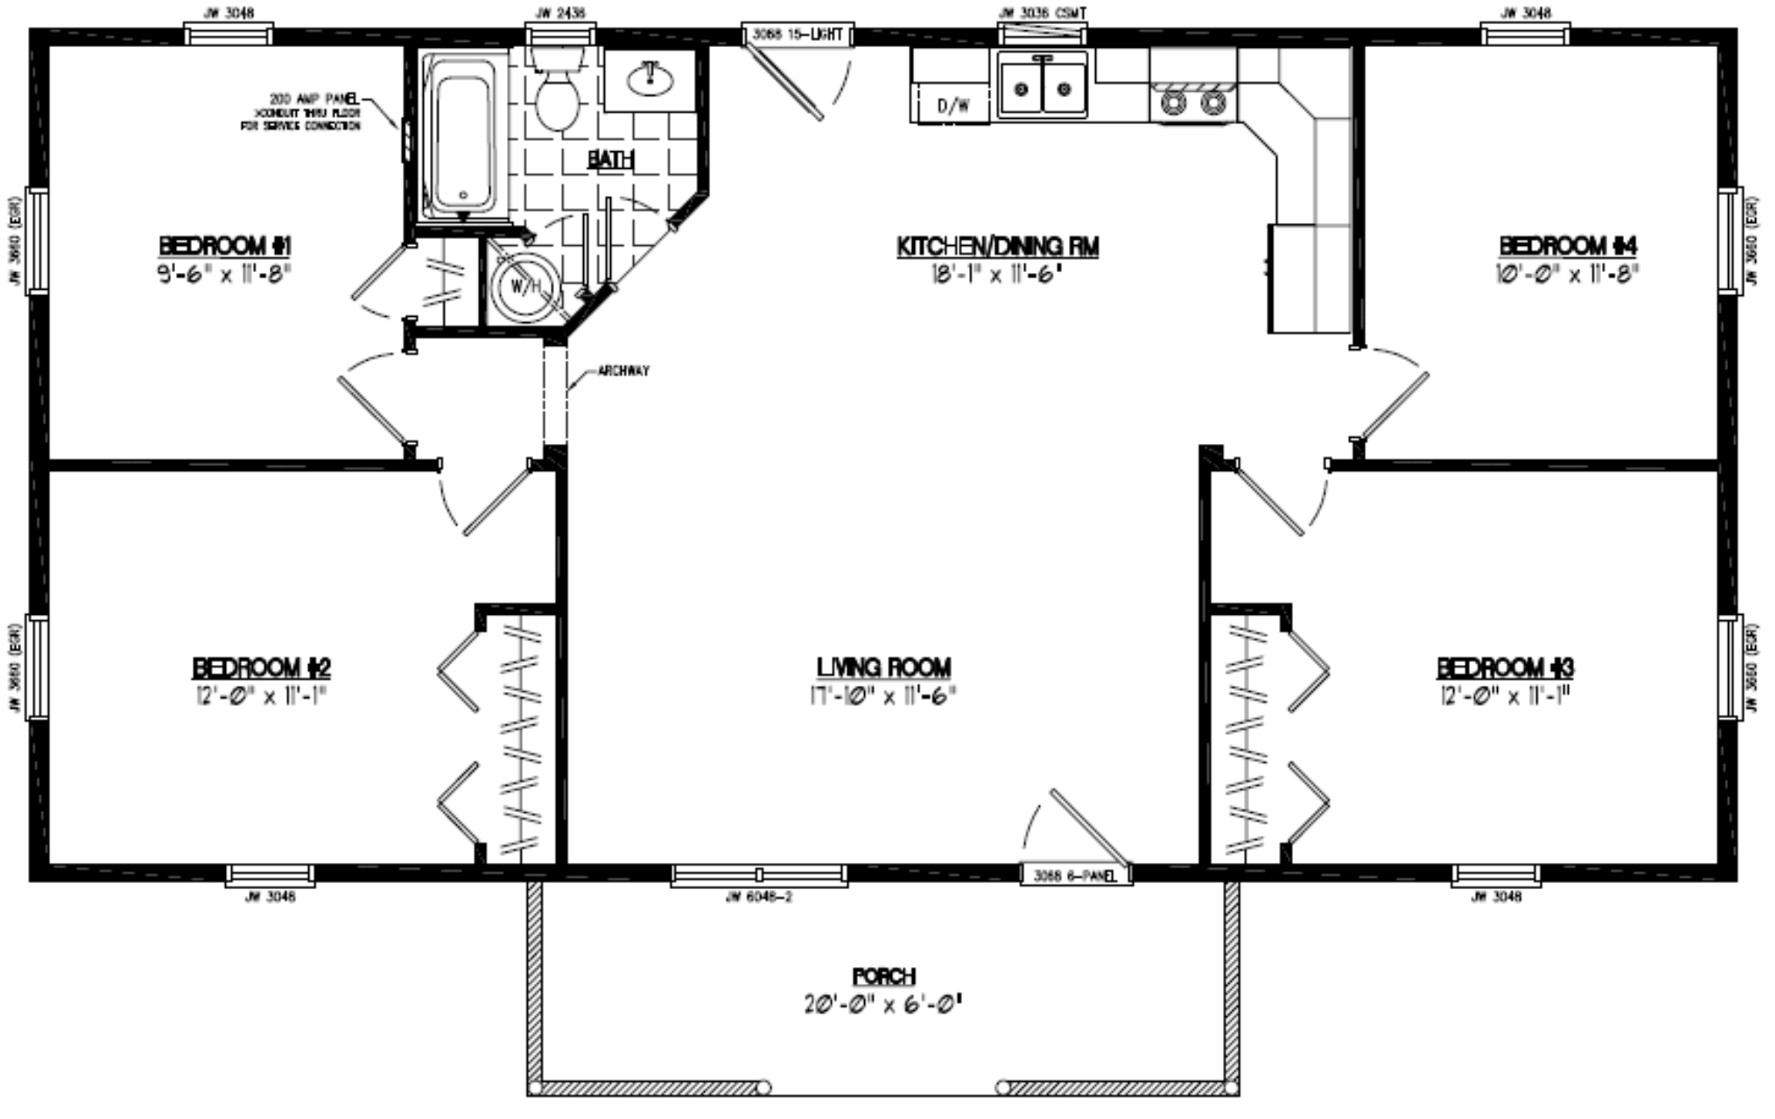 Dossier Les Artworks De Patrick Brown together with House Plan Top Architectural Design House Plans Modern Rooms Aa98b156f85ce053 moreover Home Addition New Castle Indiana likewise 494621971554402087 besides Sunnybrook Assisted Livinghendersonvillencassisted Living. on house style ideas